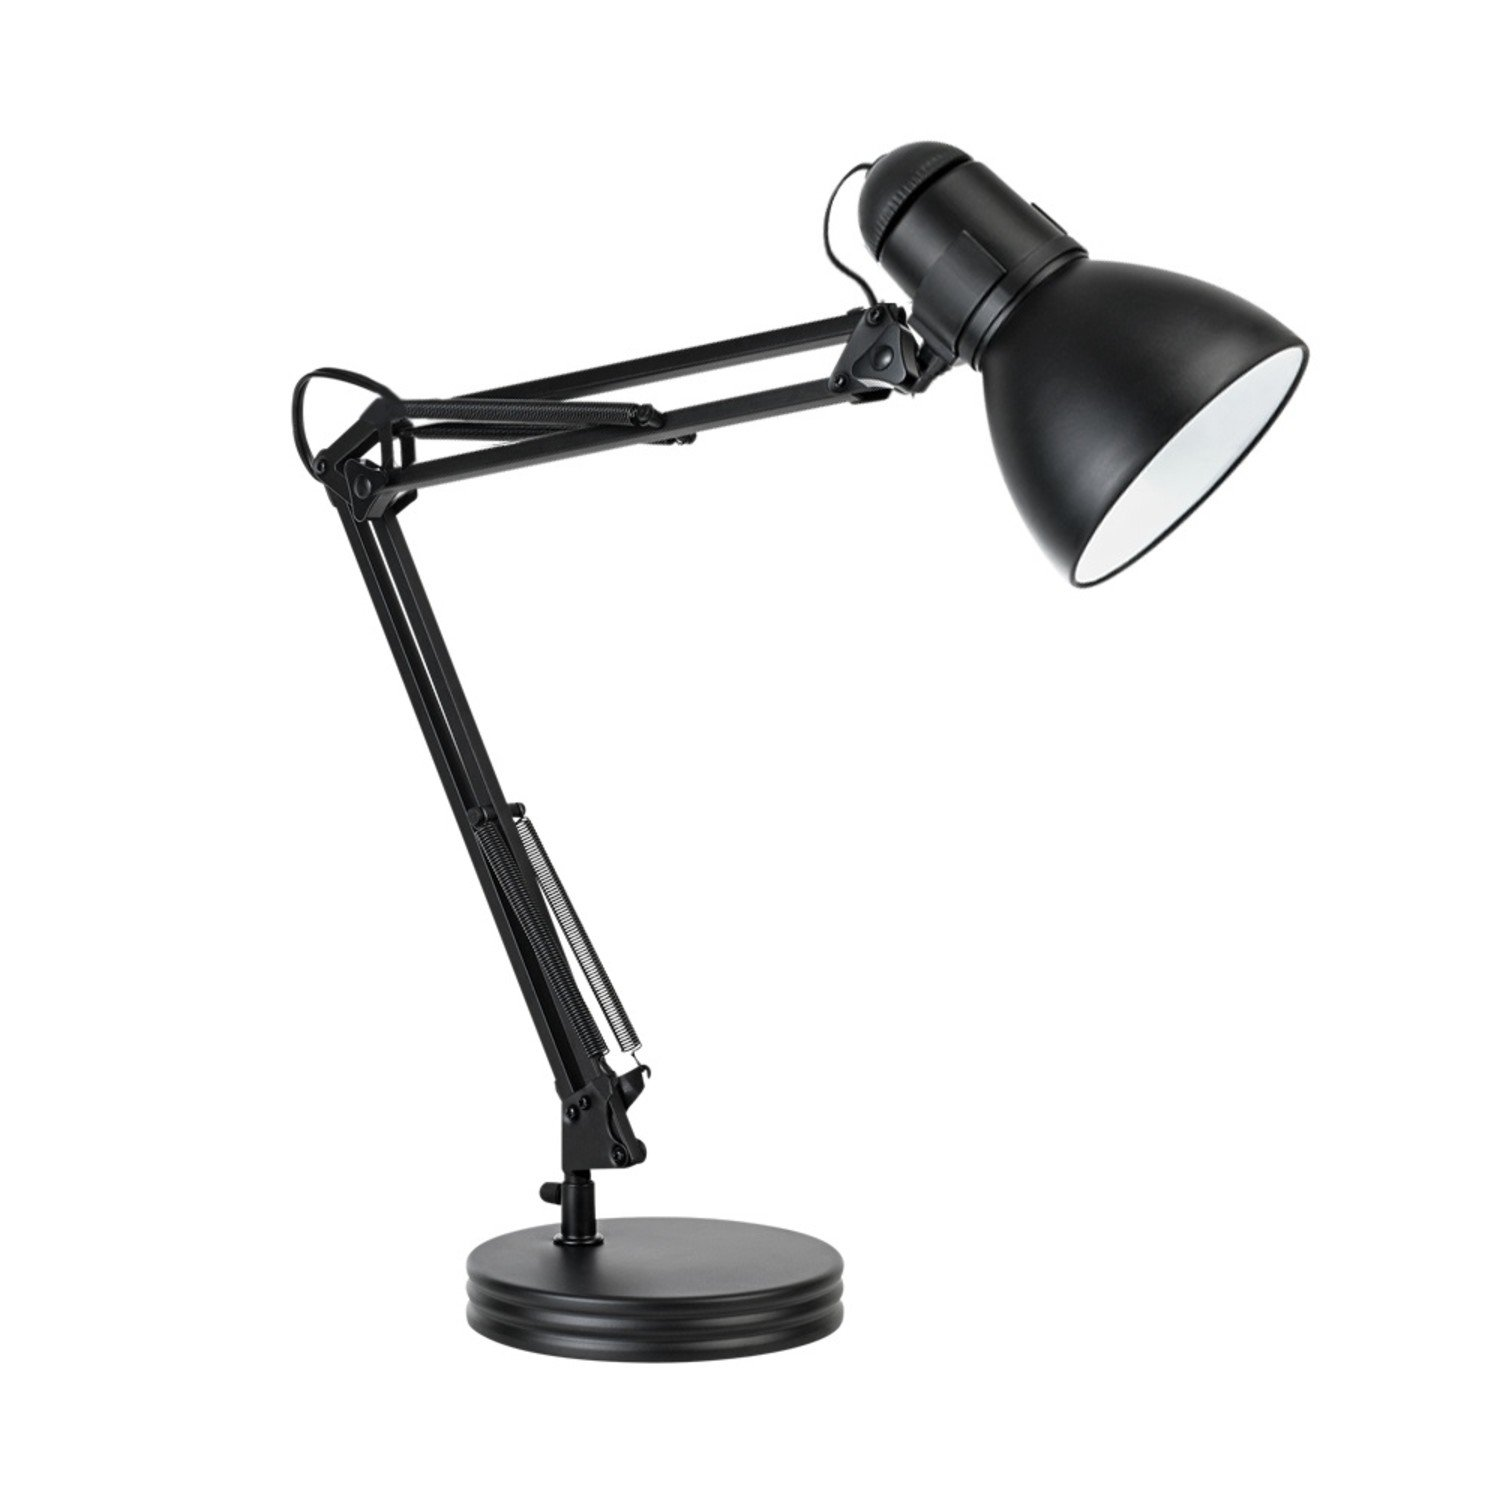 Globe Electric 35'' Heavy Base Architect Spring Balanced Swing Arm Desk Lamp, Black Finish, 5698601